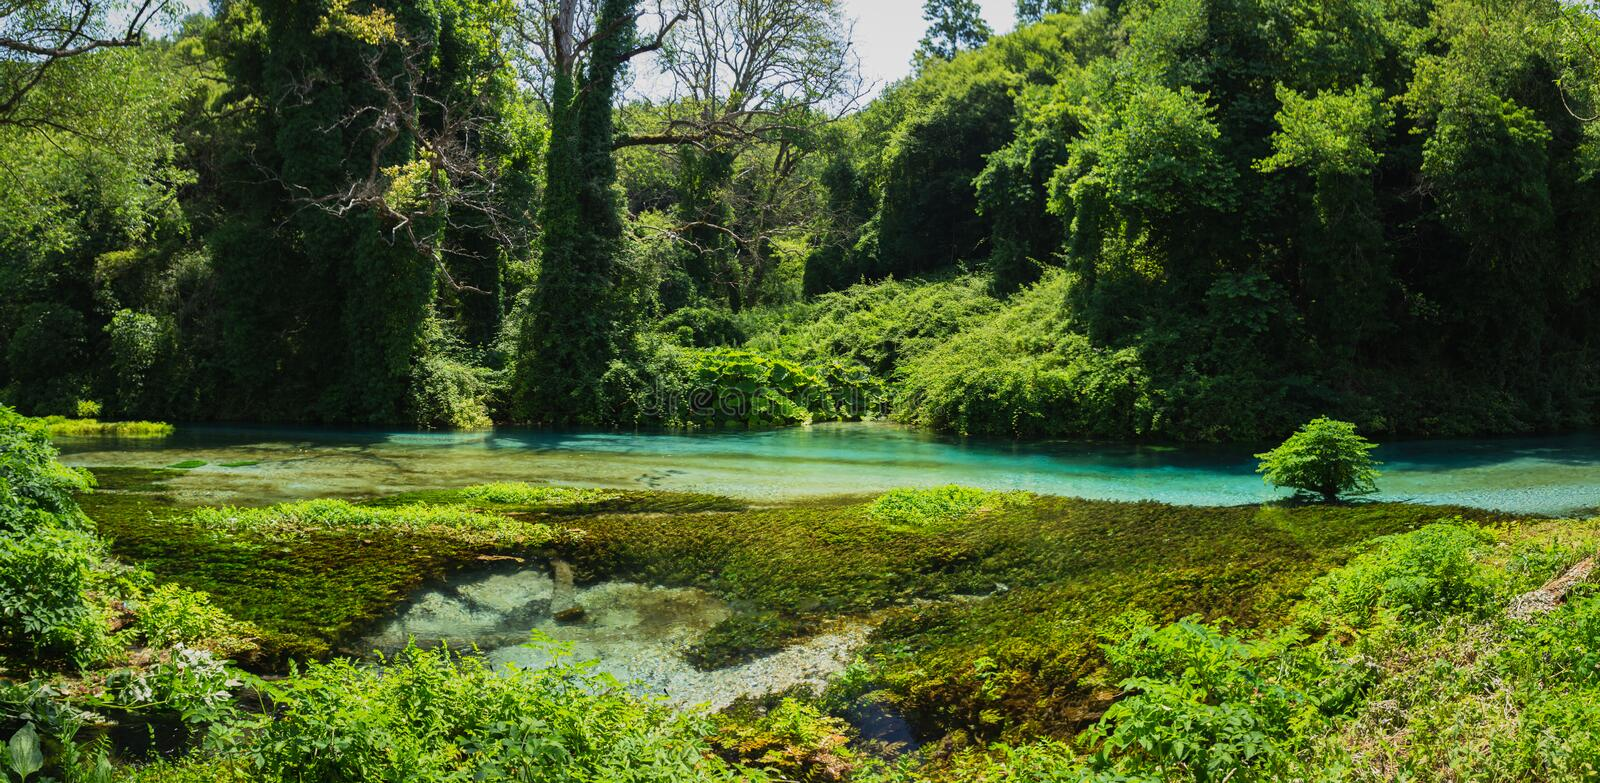 Blue Eye spring and river in Albania, Saranda area. Syri i Kaltër - Blue Eye - geological phenomenon where a stream of fresh, cold water flow to the surface stock photo